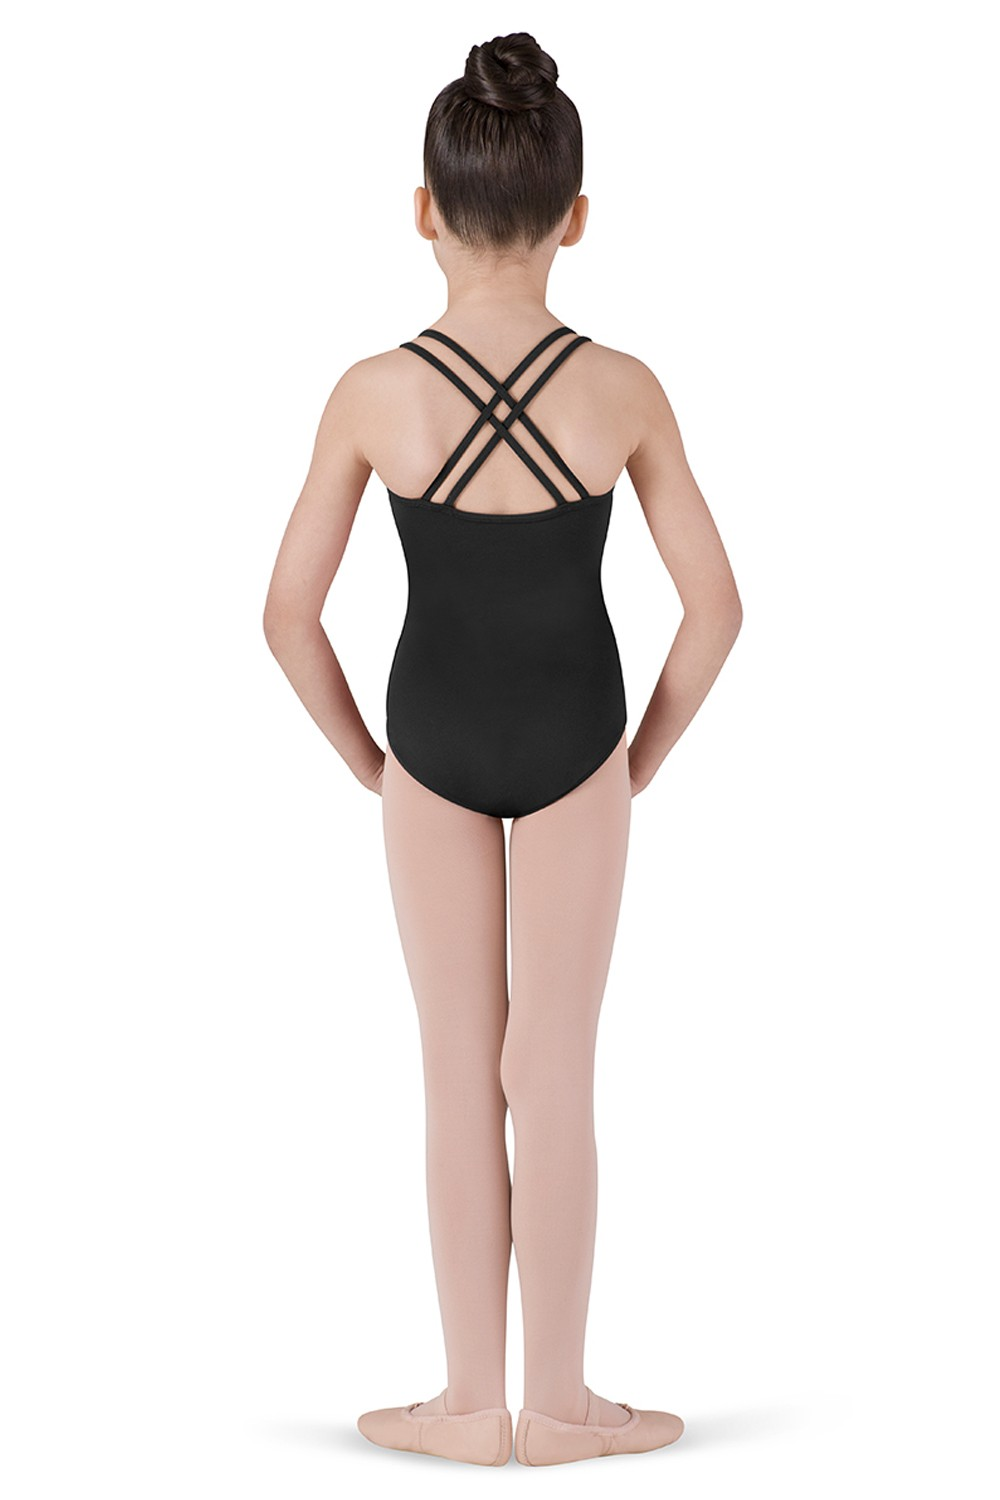 Dolly Children's Dance Leotards